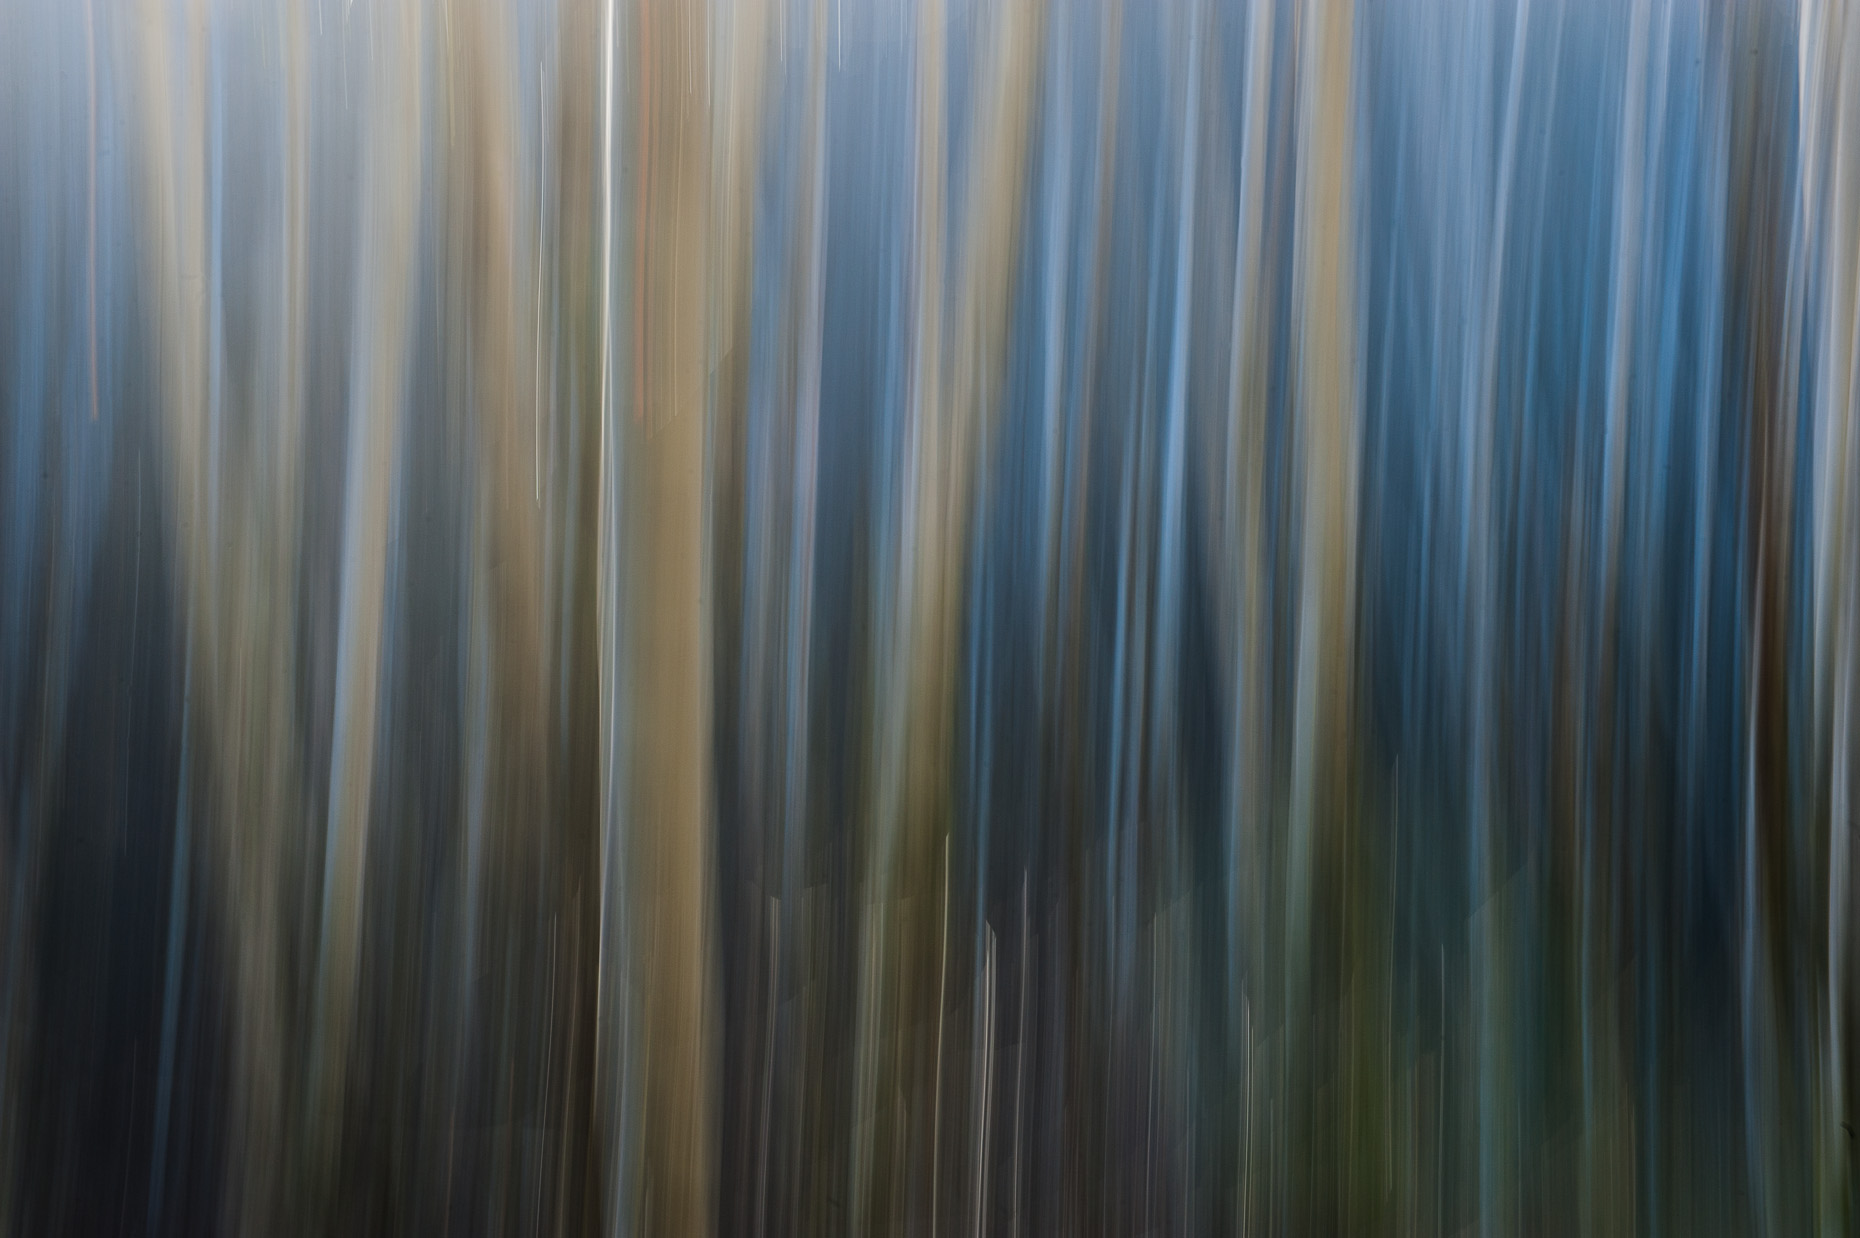 Abstract image of white birch trees with  soft blue and white colors.